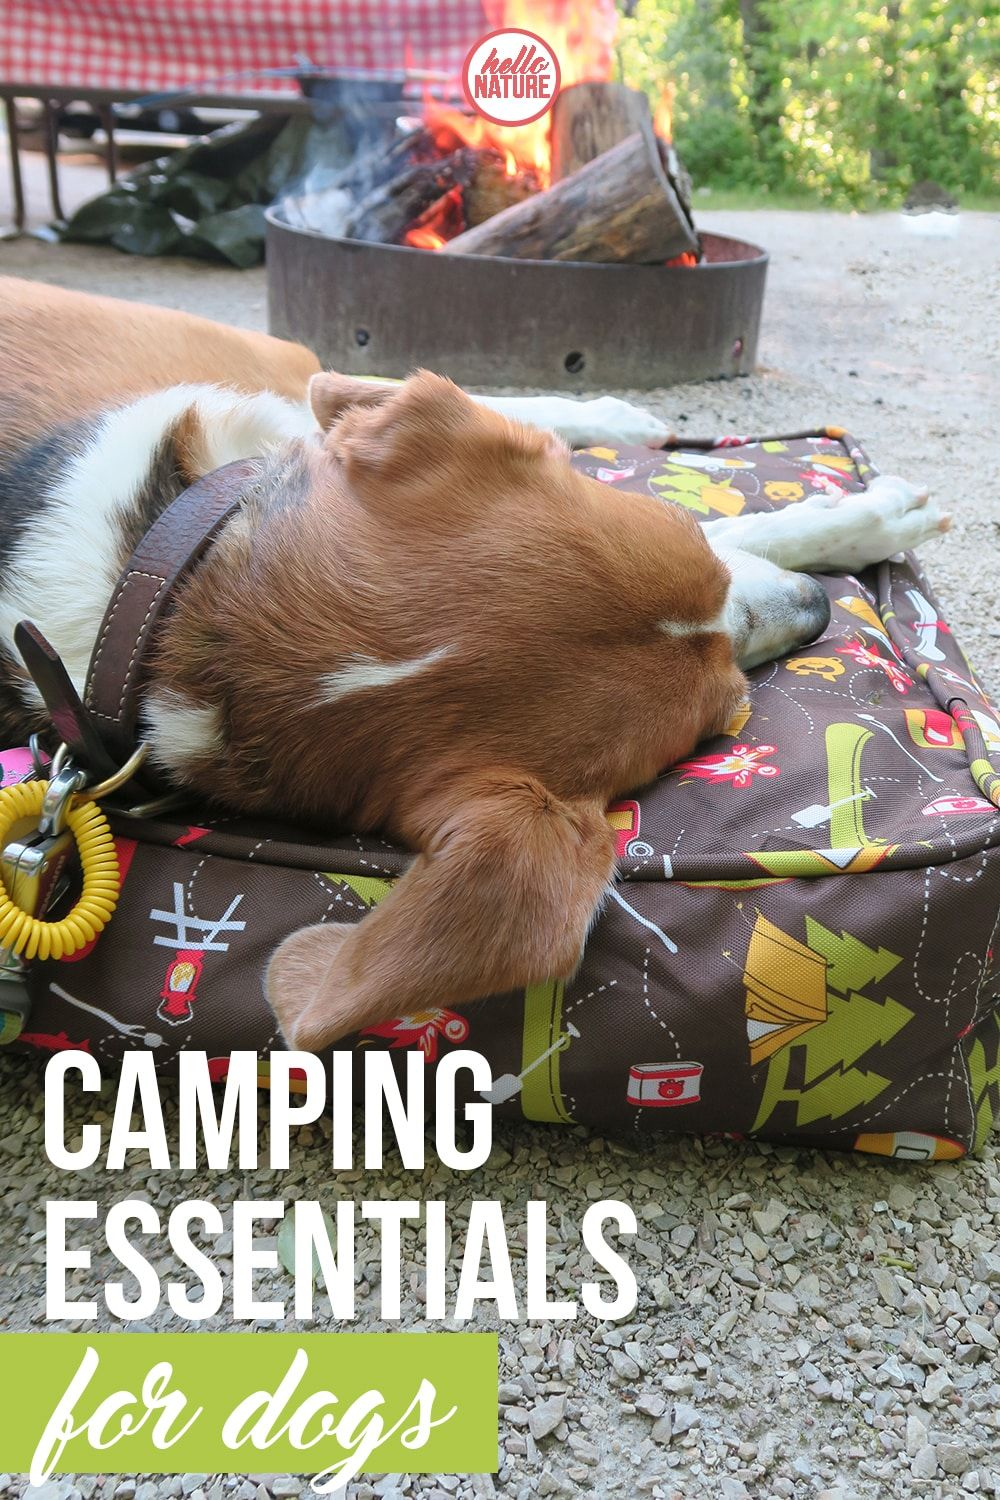 MustHave Camping Essentials for Dogs is part of Dog camping - Camping with dogs in summer can be a blast when you're prepared  Check out this list for my musthave dog camping and hiking gear to get ready!